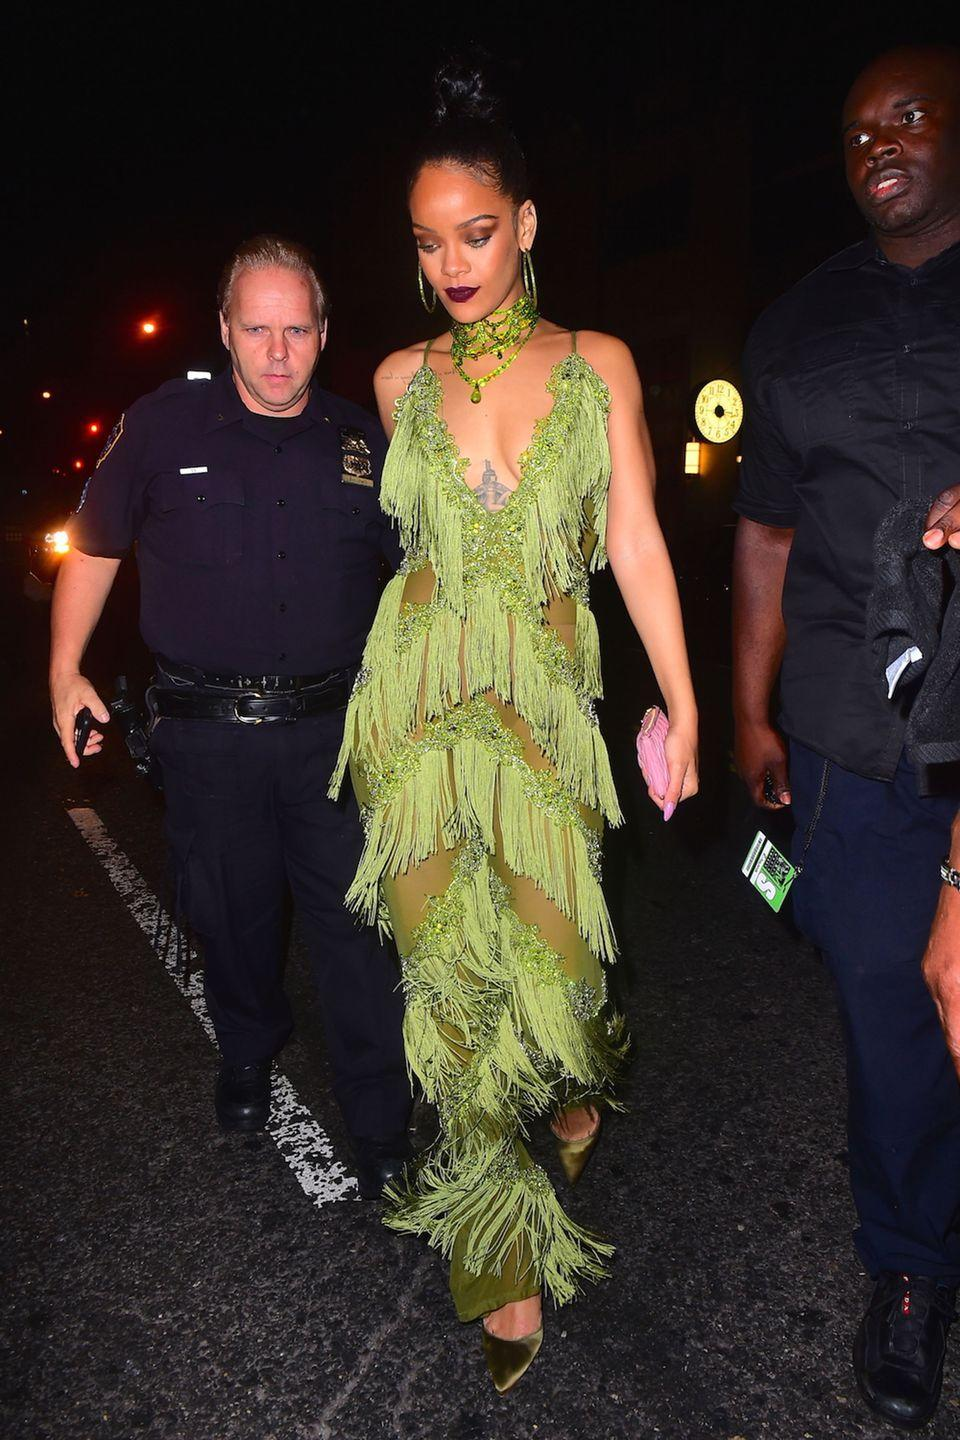 "<p>Fresh off her Vanguard Award win, four performances and <a href=""https://www.harpersbazaar.com/fashion/trends/a17382/rihanna-outfits-mtv-vmas-2016/"" rel=""nofollow noopener"" target=""_blank"" data-ylk=""slk:quadruple costume changes"" class=""link rapid-noclick-resp"">quadruple costume changes</a> at the VMAs, Rihanna stepped out to party in a fringed green jumpsuit and matching accessories in the lime hue, from her hoop earrings and choker necklace to the velvety pumps on her feet.</p>"